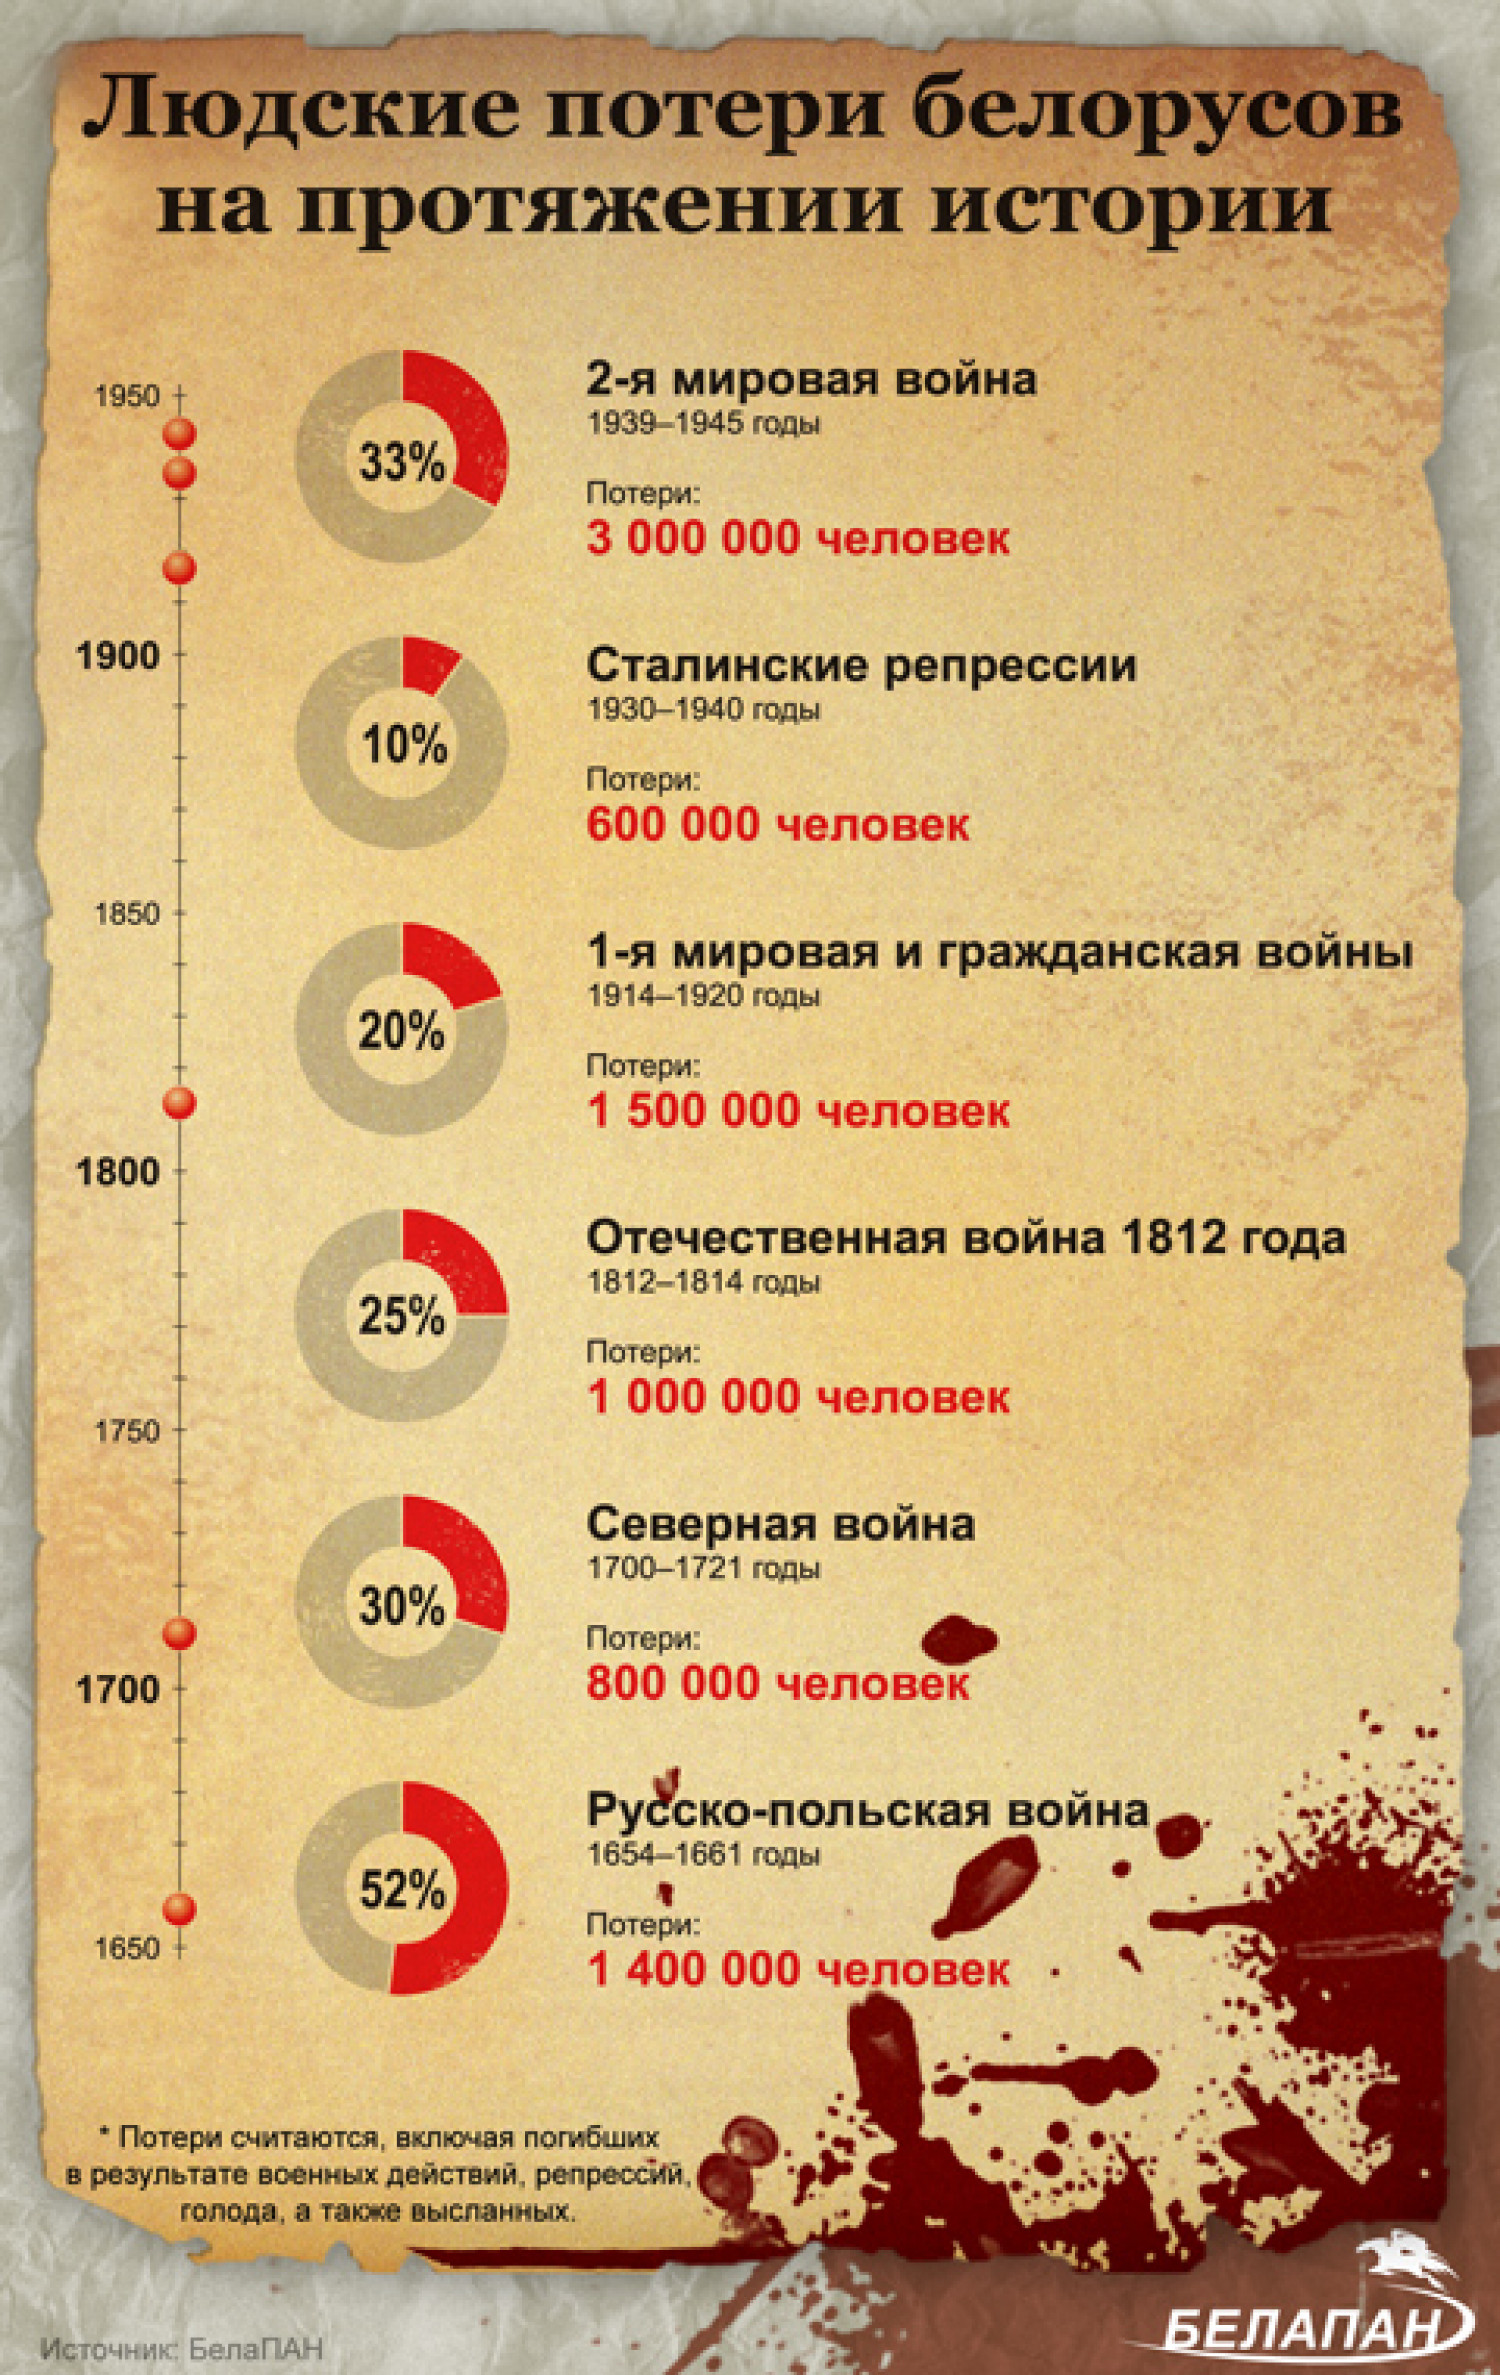 Human losses of the Belarusians in throughout the history Infographic